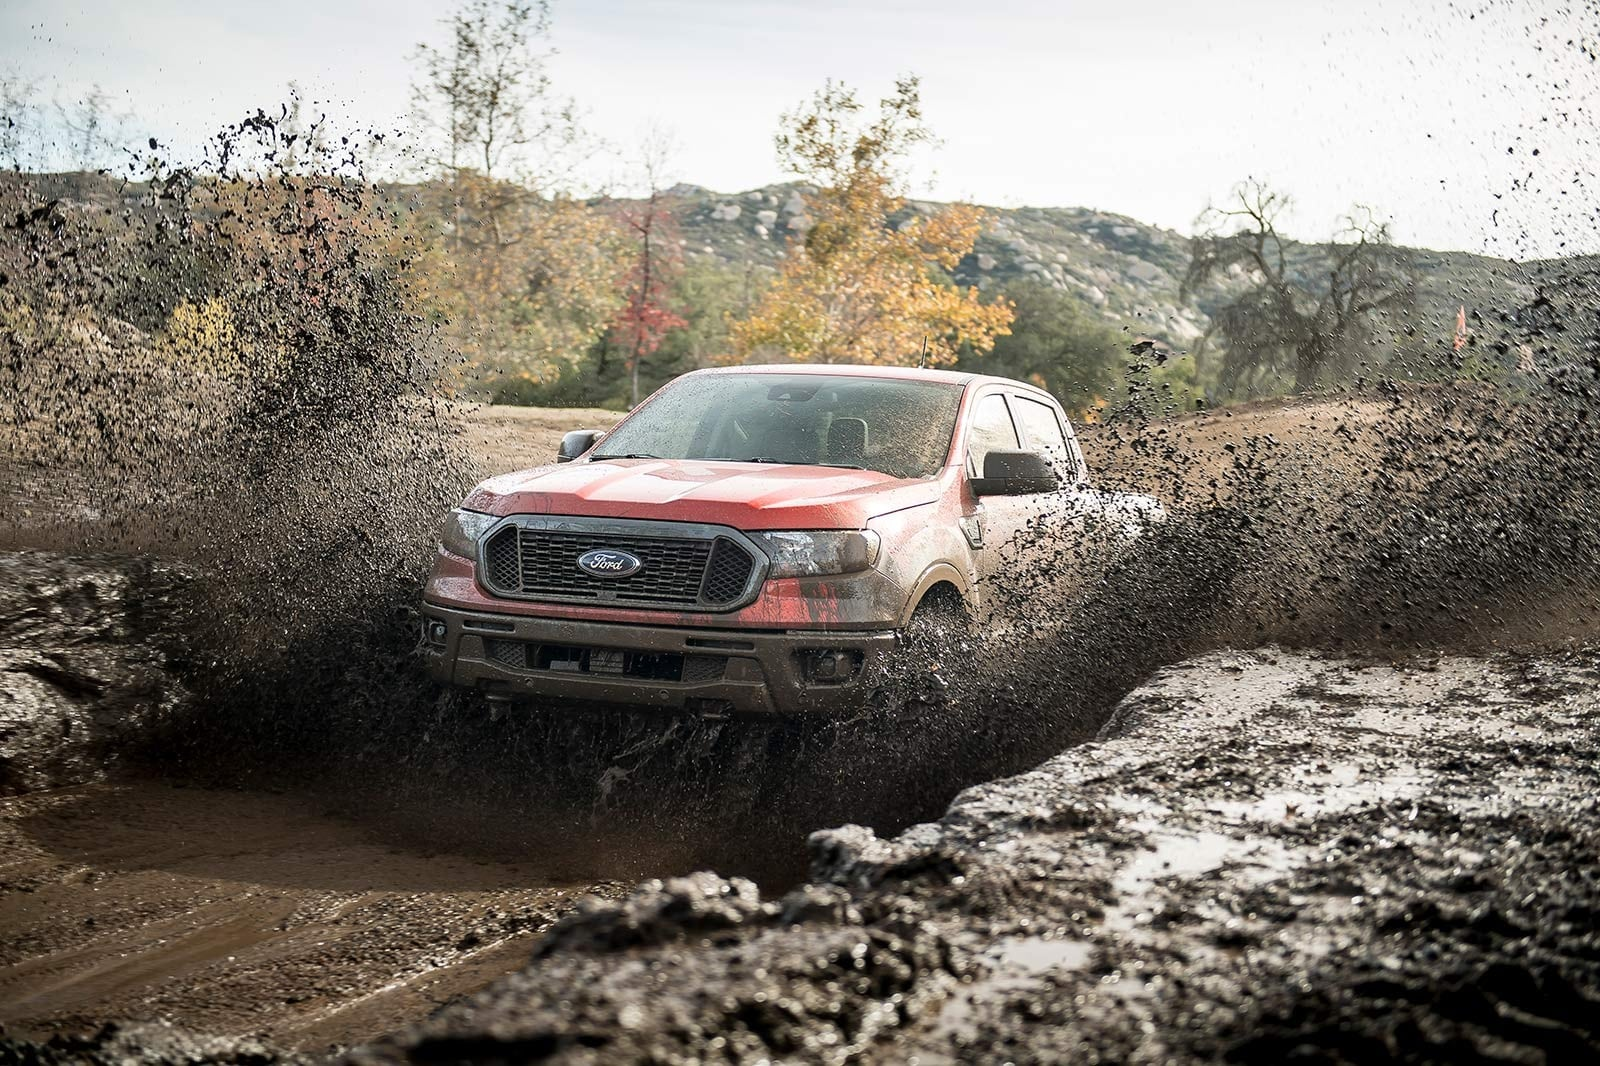 hight resolution of on the road the ranger rides smoothly over cracked surfaces but at speed it tends to feel springy and underdamped over larger dips and swales in the